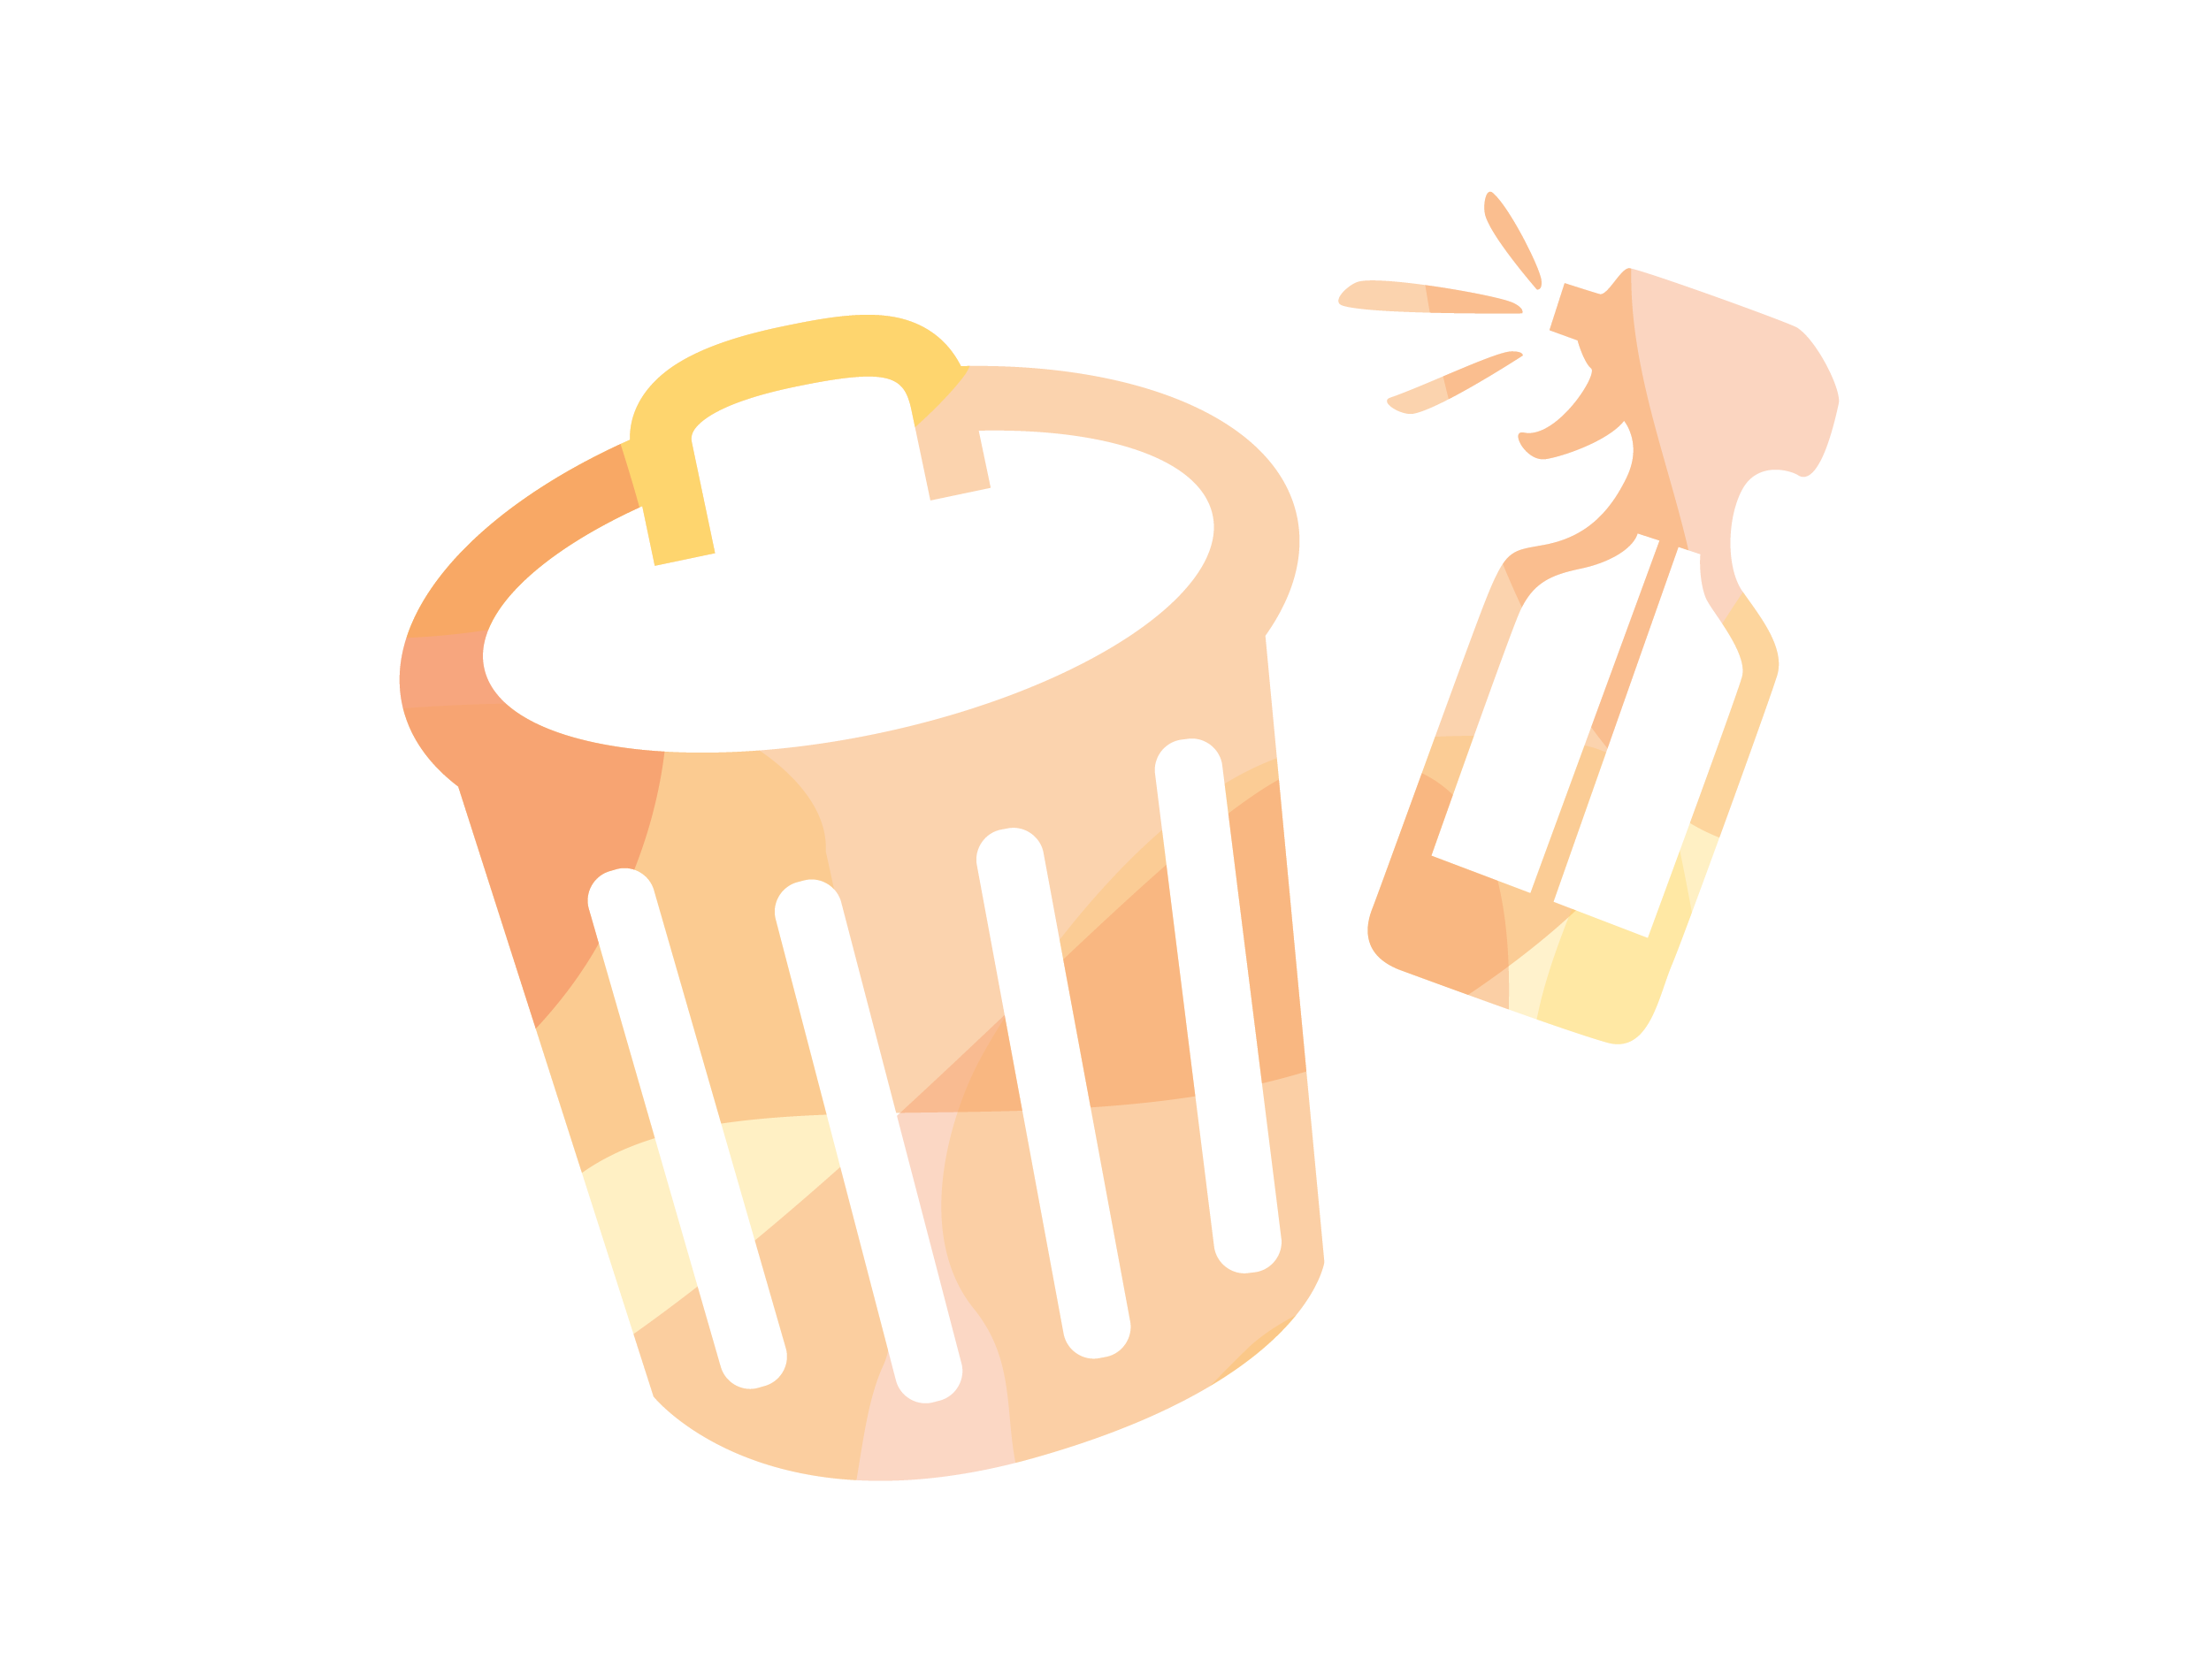 Trash can and spray bottle illustration